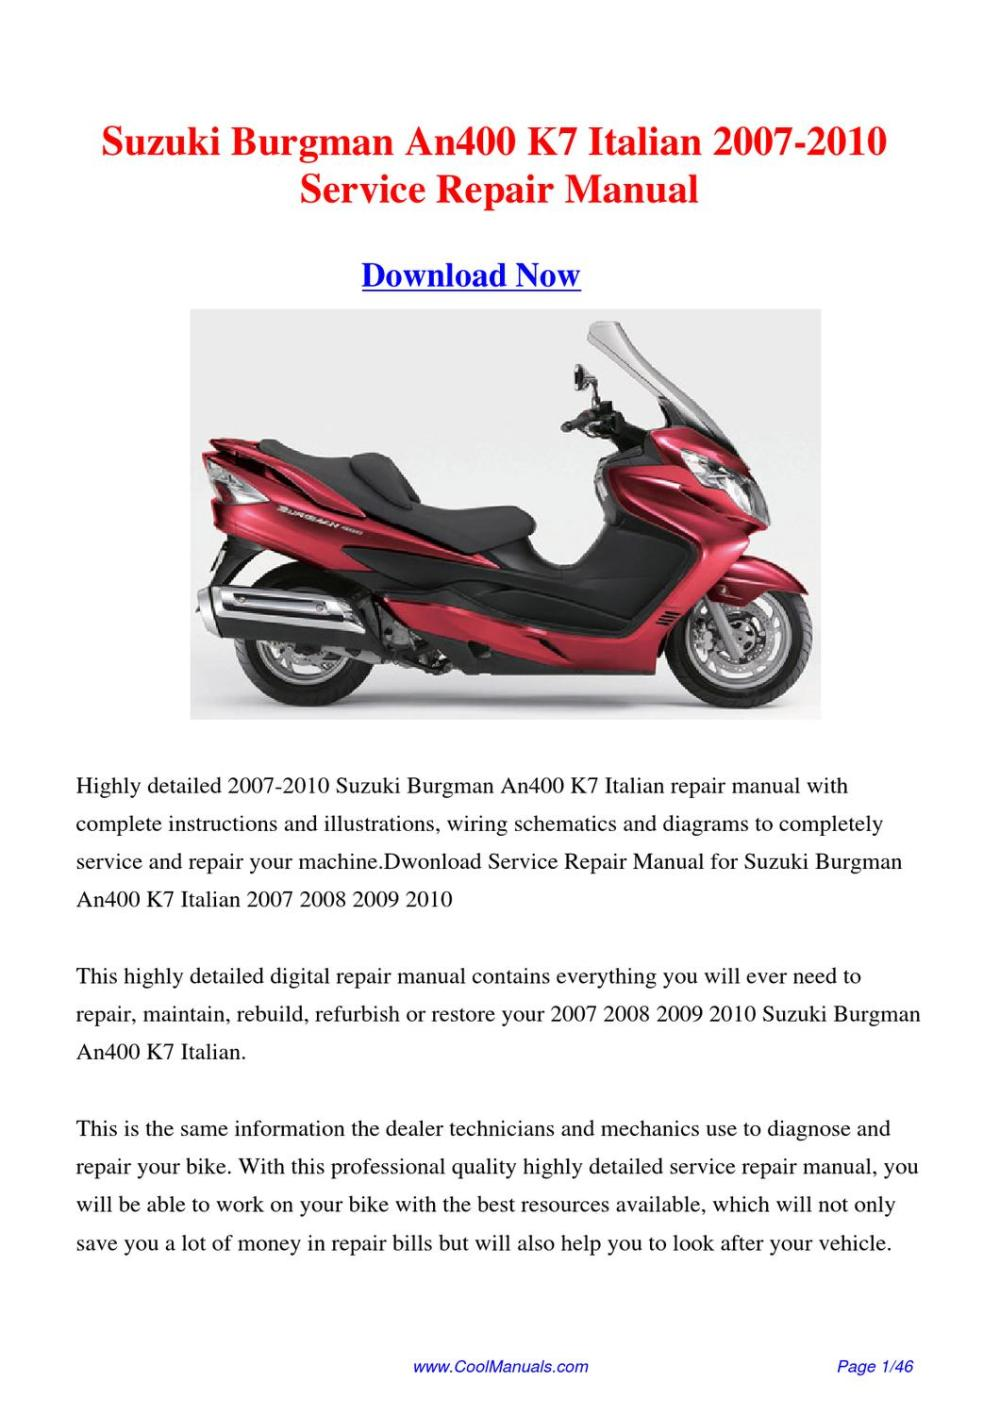 medium resolution of repair manual riders website and forum italian currently available at notaire bretagne immobilier standard maintenance oil changes way example simple